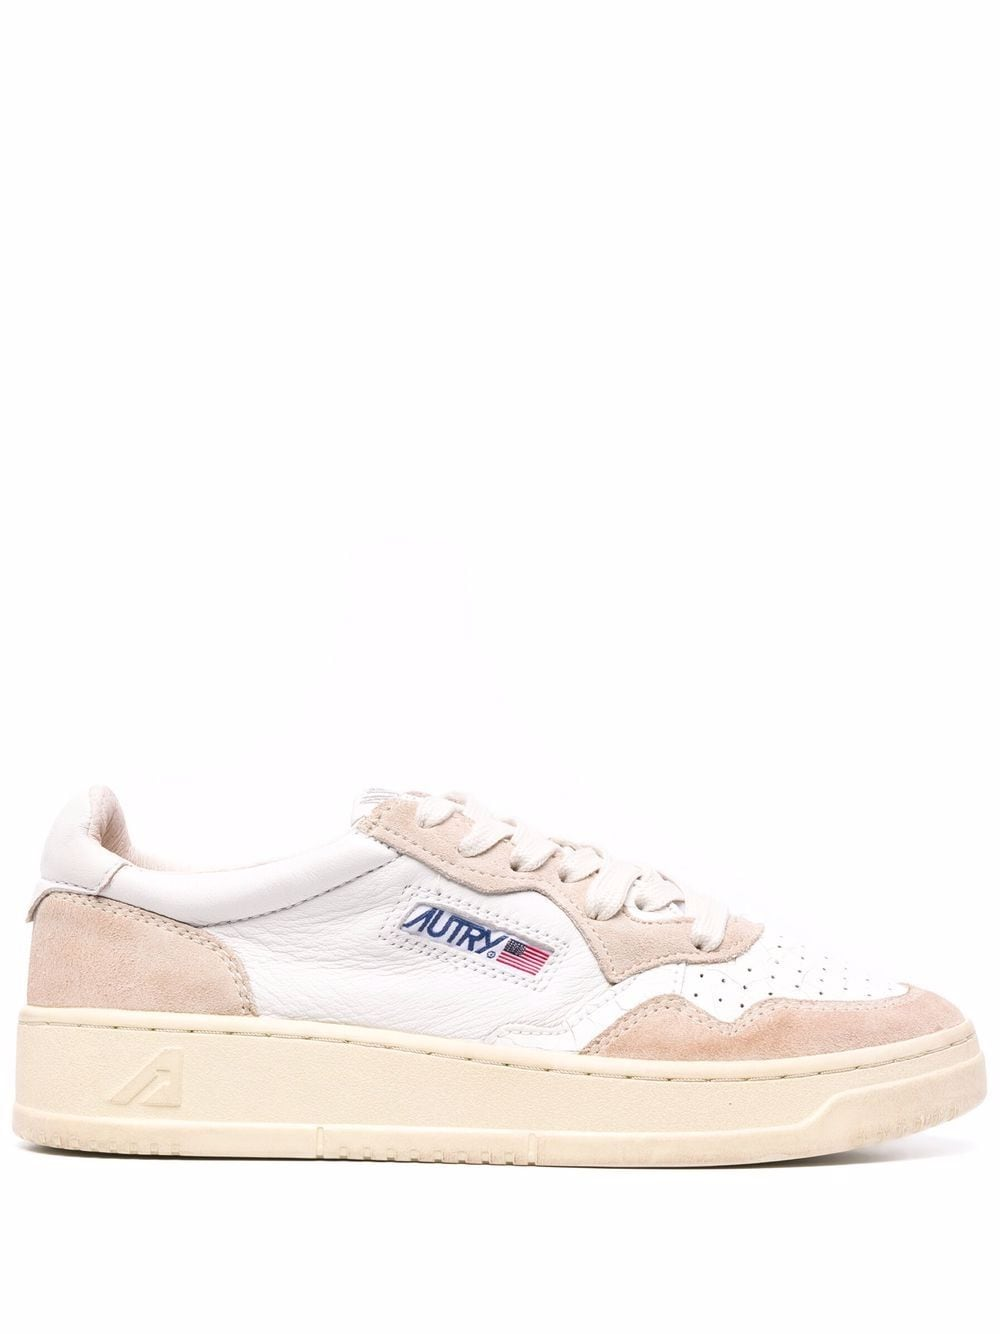 <p class='small-title'>AUTRY</p>Sneakers Leather and Suede